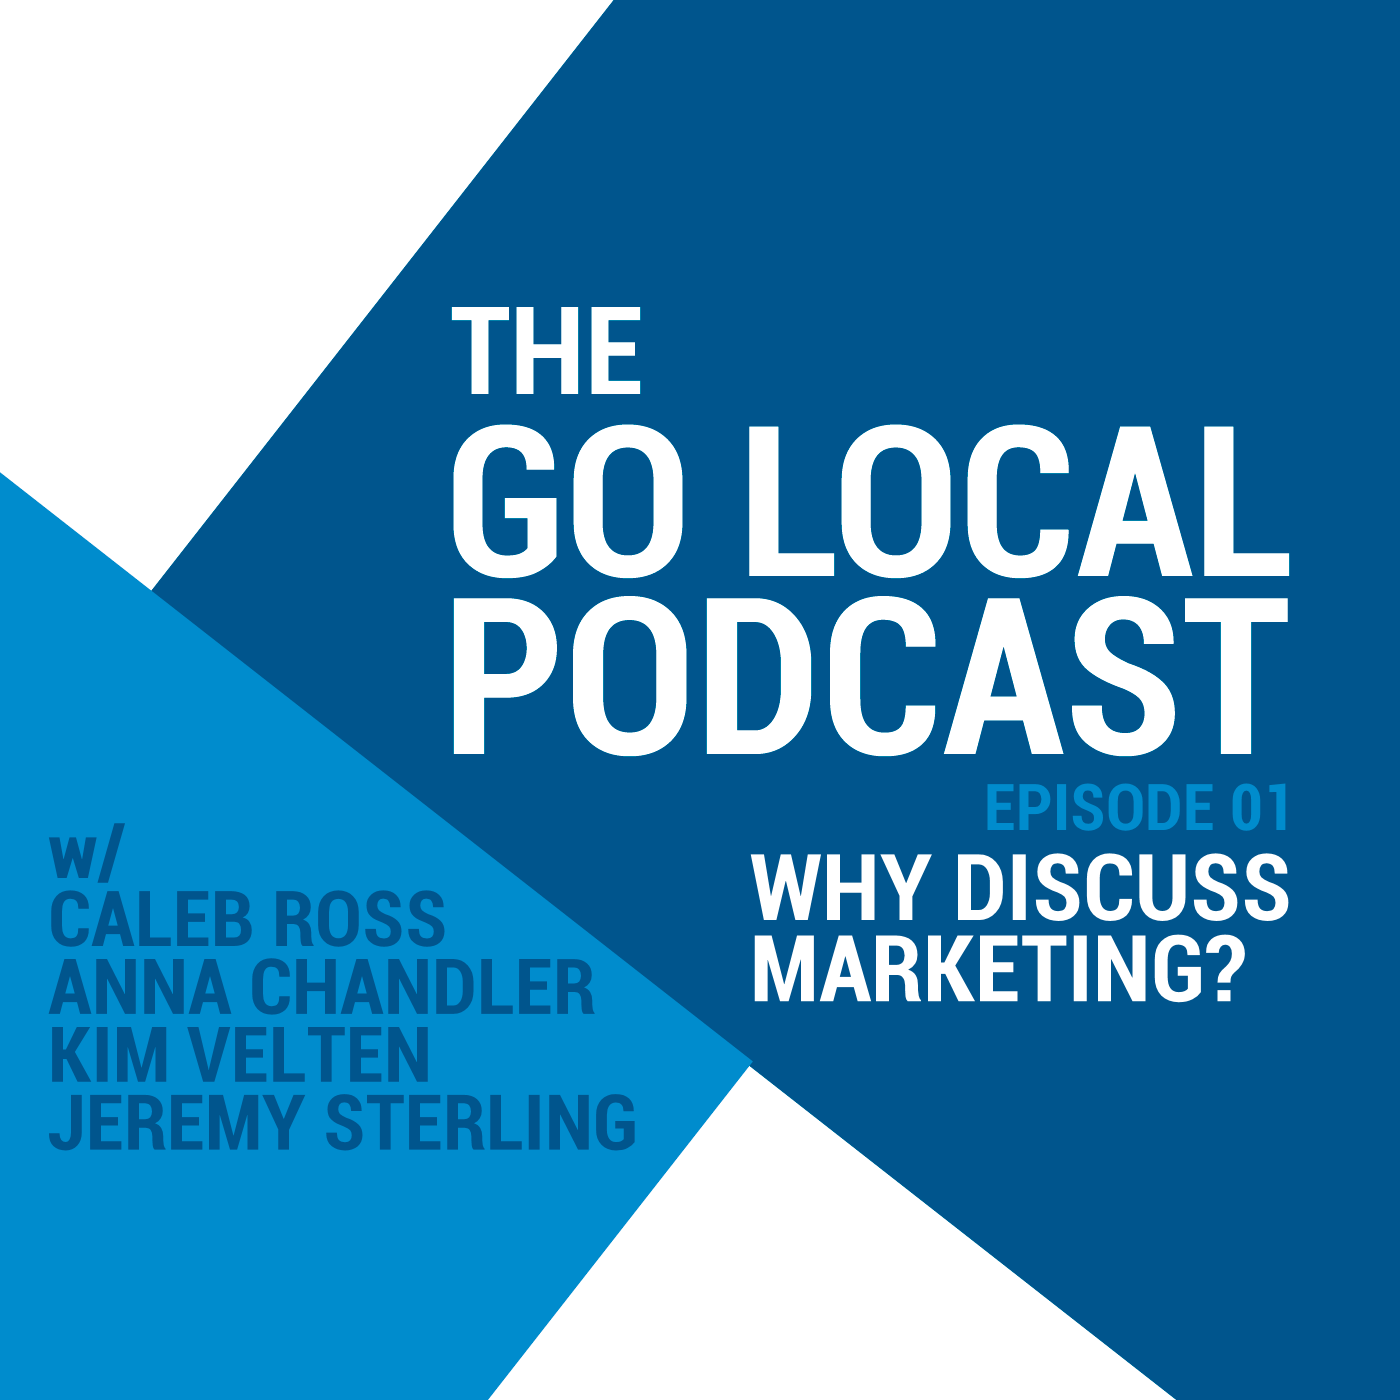 Go Local Podcast episode 01 Why Discuss Marketing?